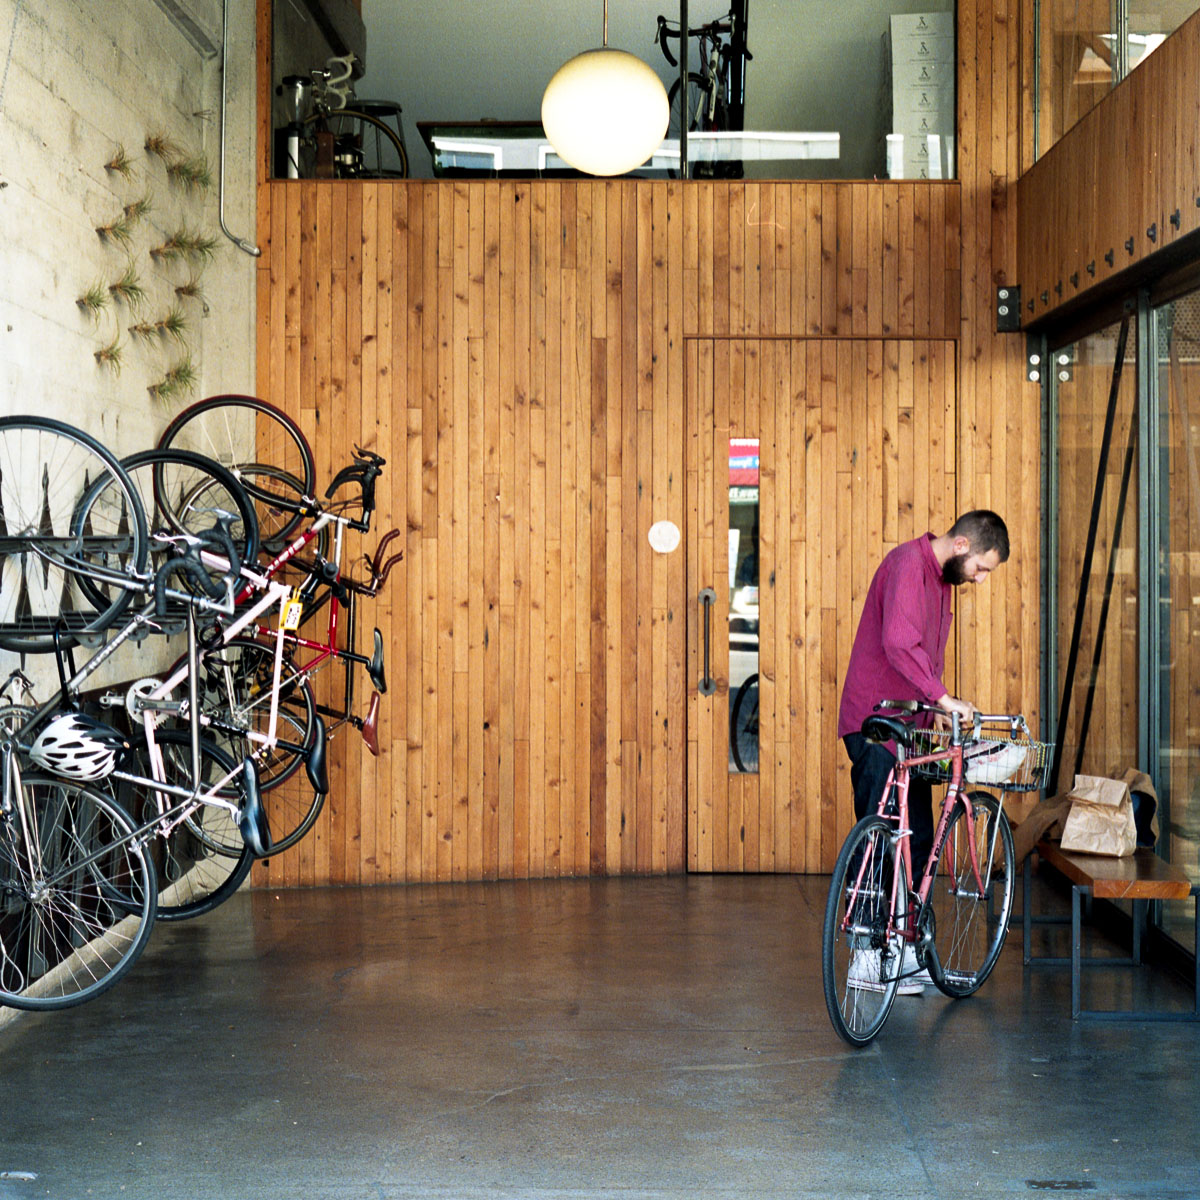 04304014_Jeffscottshaw_Sightglass_Coffee-1